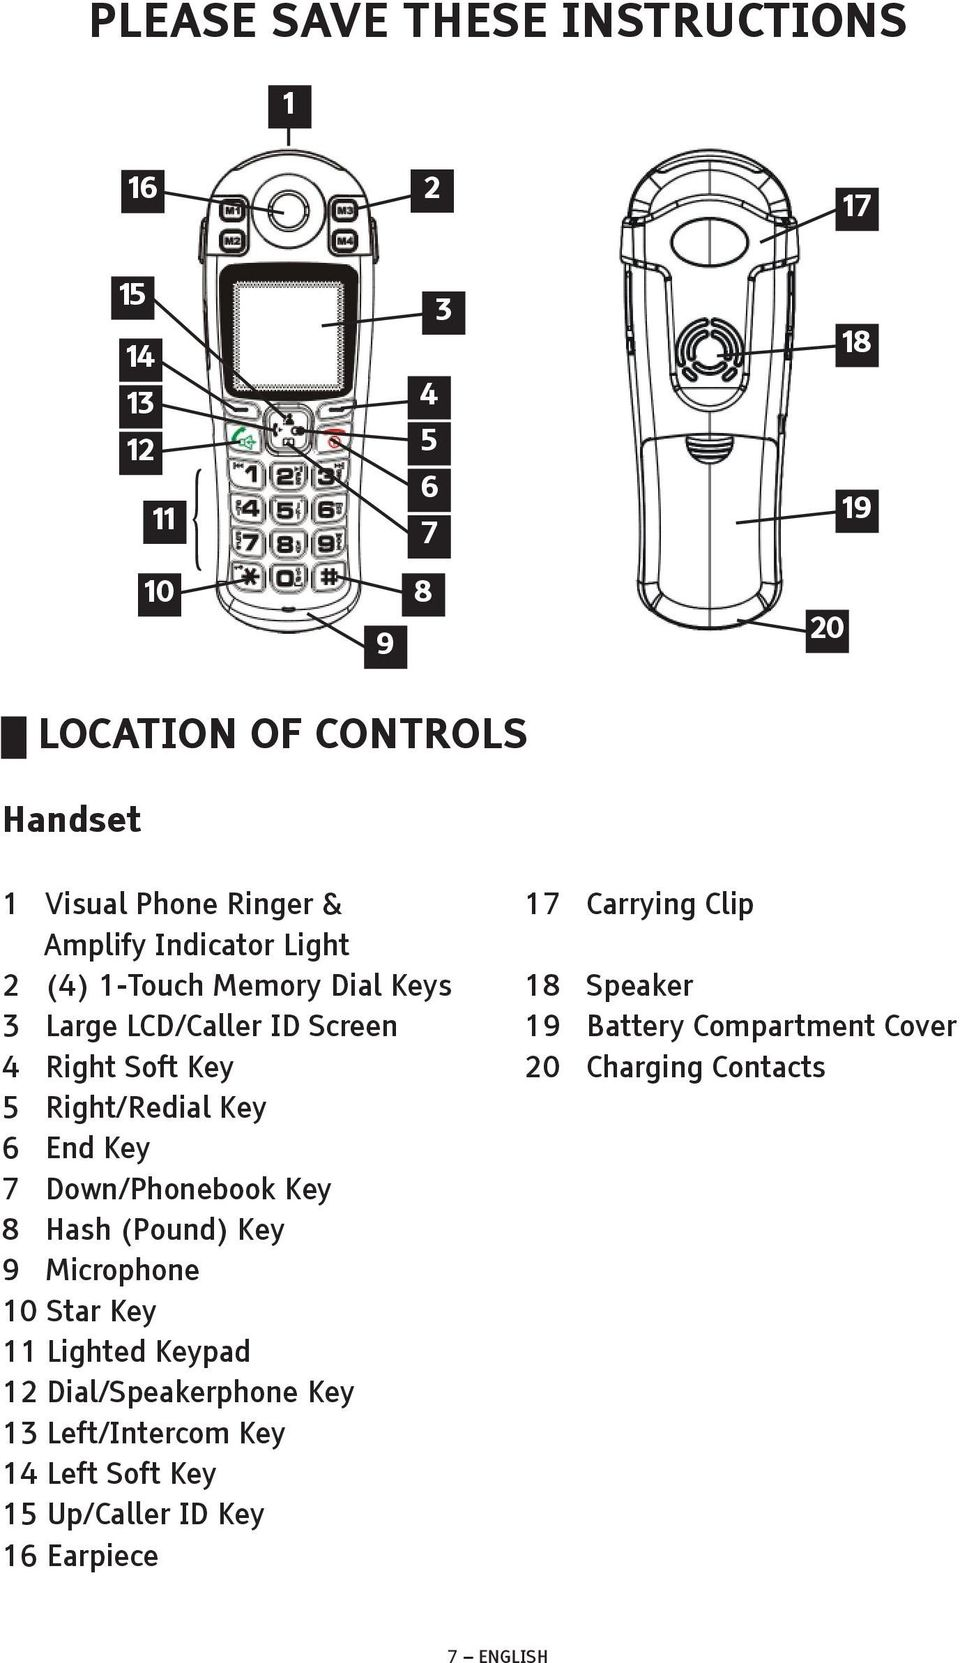 Compartment Cover 4 Right Soft Key 20 Charging Contacts 5 Right/Redial Key 6 End Key 7 Down/Phonebook Key 8 Hash (Pound) Key 9